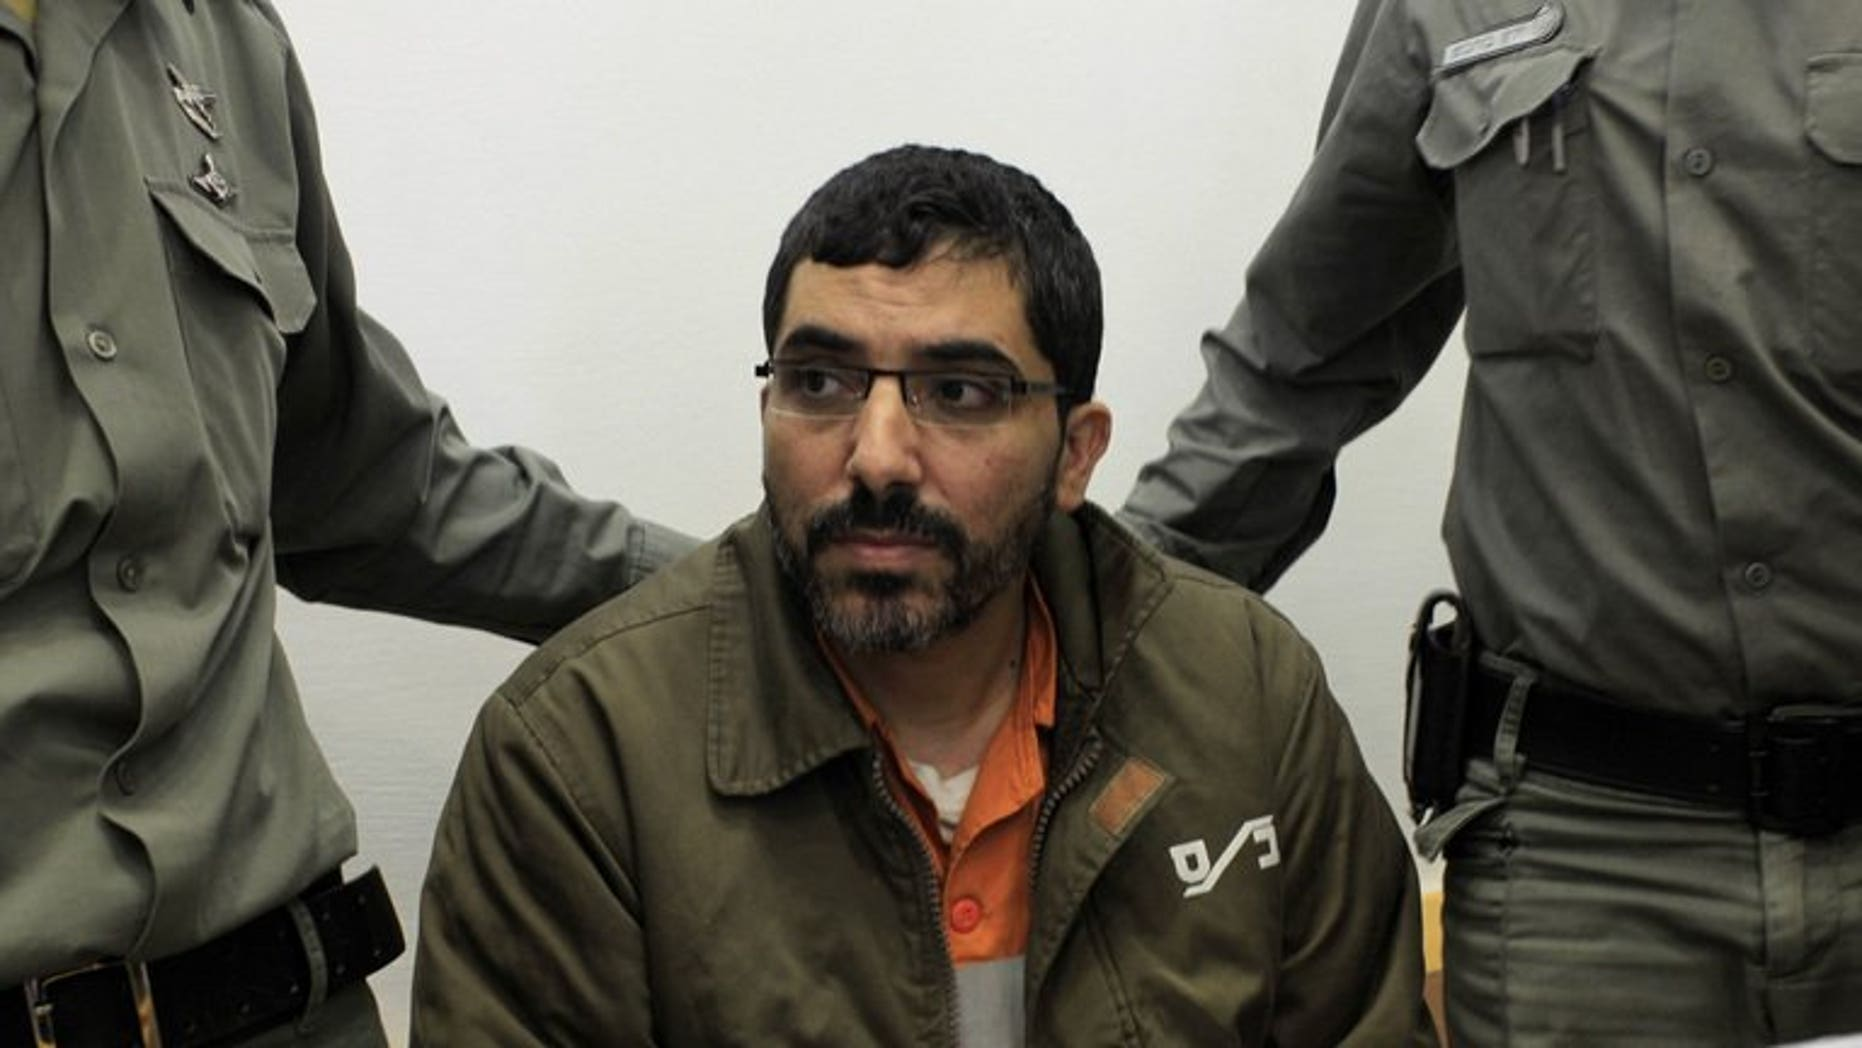 Palestinian engineer Dirar Abu Sisi attends a court session in Beersheva on April 4, 2011. The Palestinian from Gaza, who was snatched from Ukraine and is being held in an Israel prison, has begun refusing food, a prison spokeswoman said on Thursday.